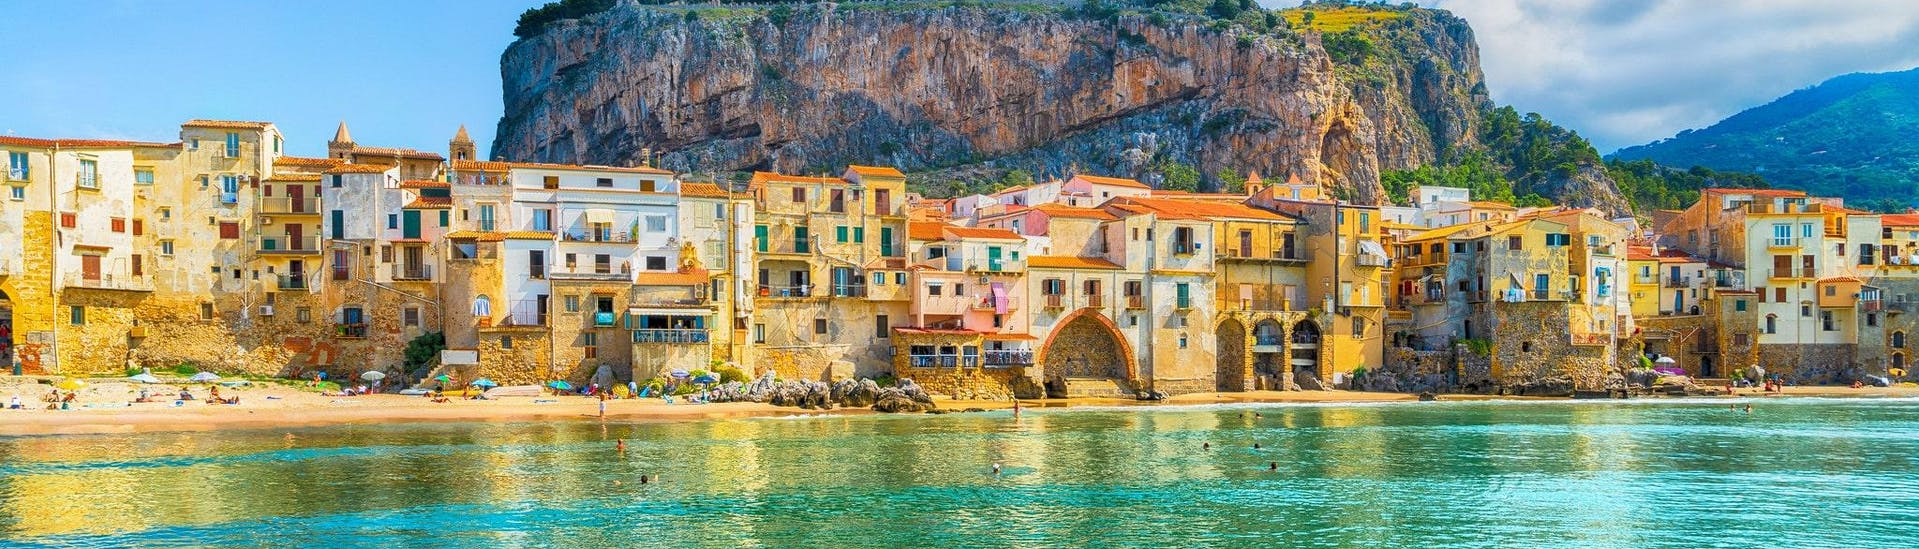 During a boat trip in Cefalù, Sicily, you can admire the mediaval village from the water.